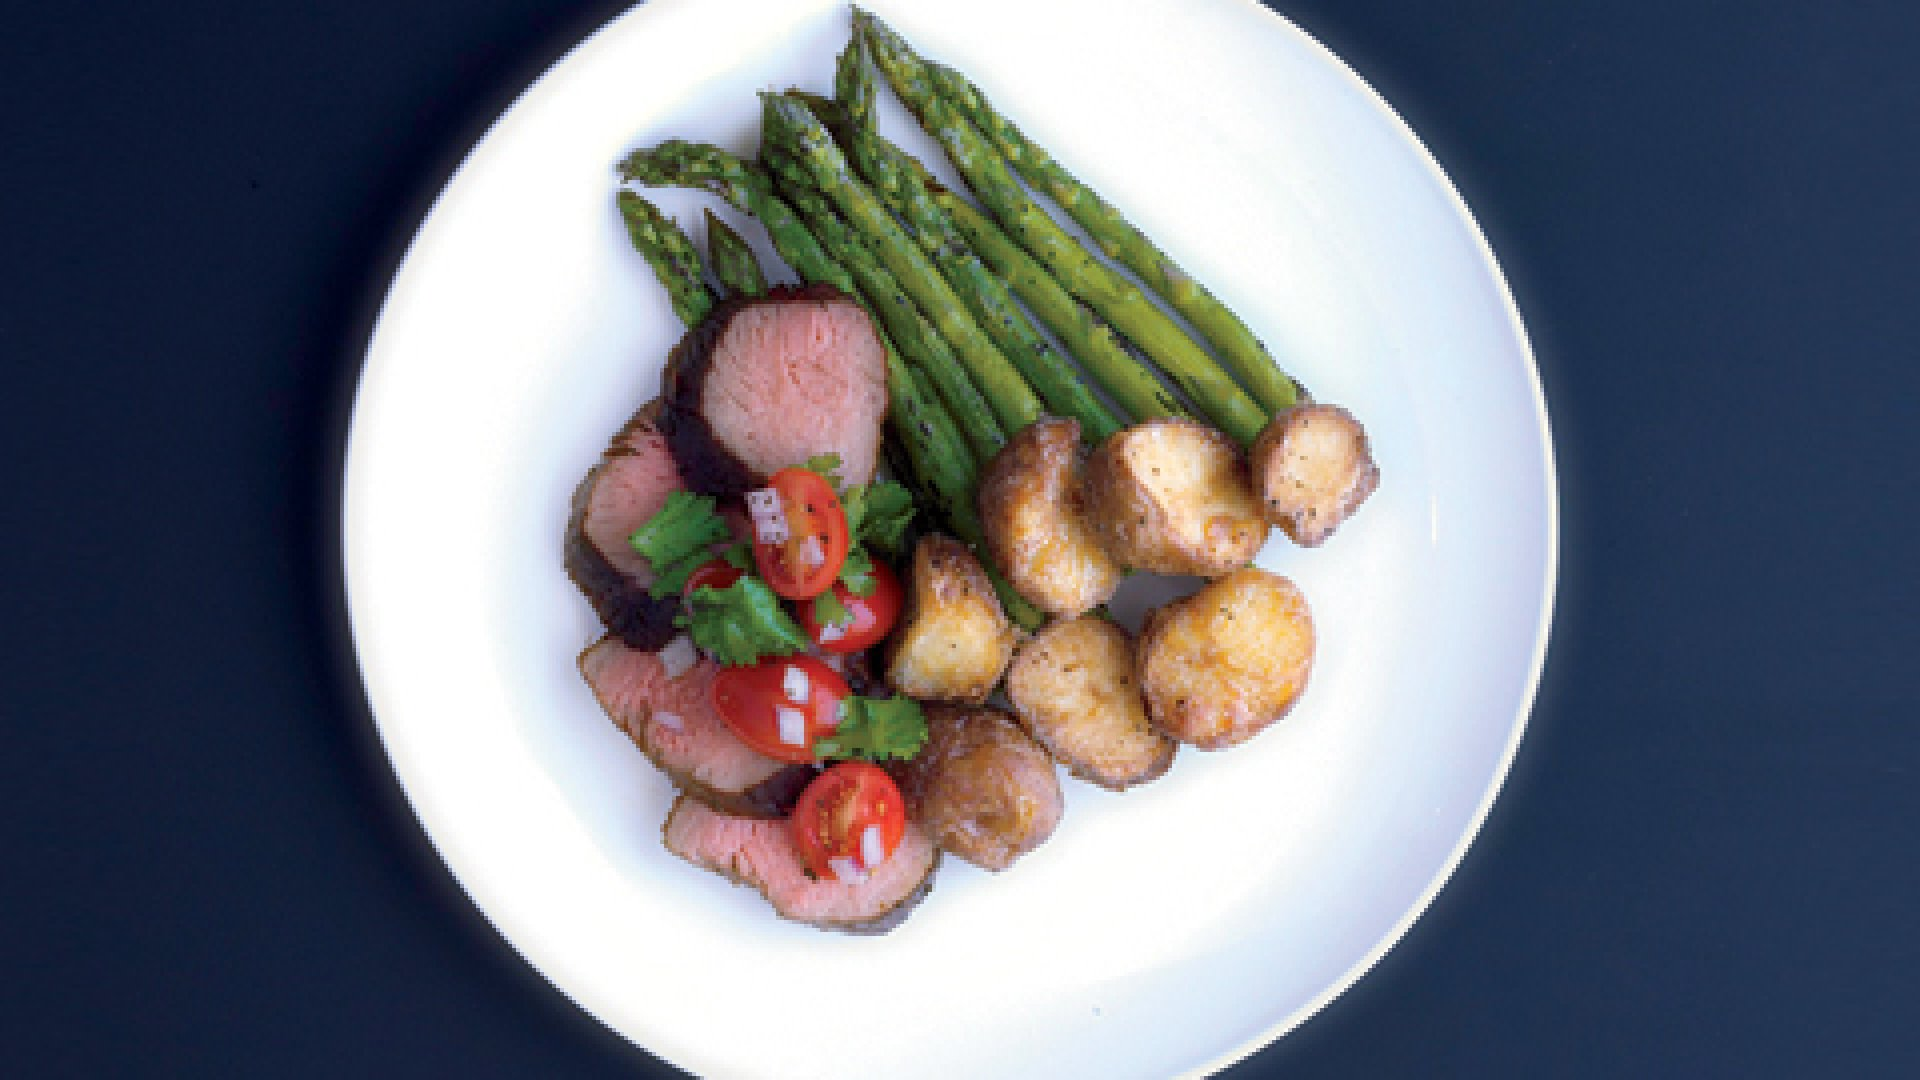 <b>Lunch is Served</b> One of Gastronaut's recent offerings: grass-fed beef, crispy potatoes, and grilled asparagus.